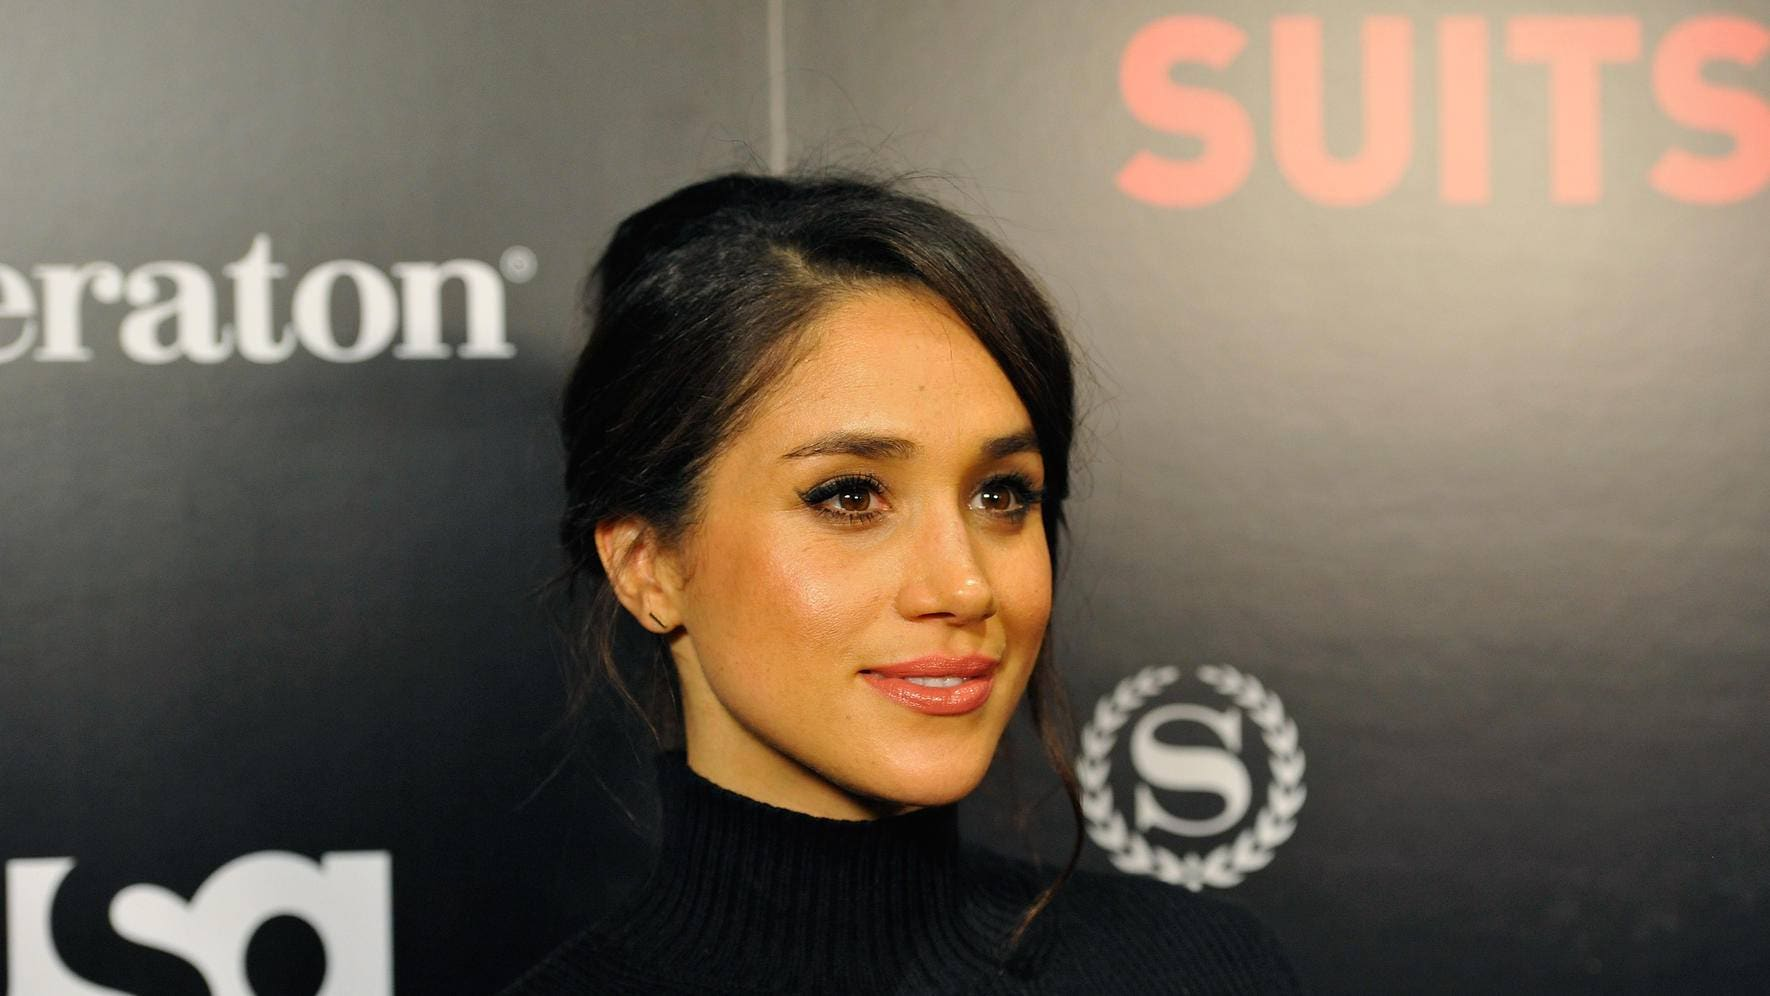 Meghan Markle Suits Freundin Prinz Harry